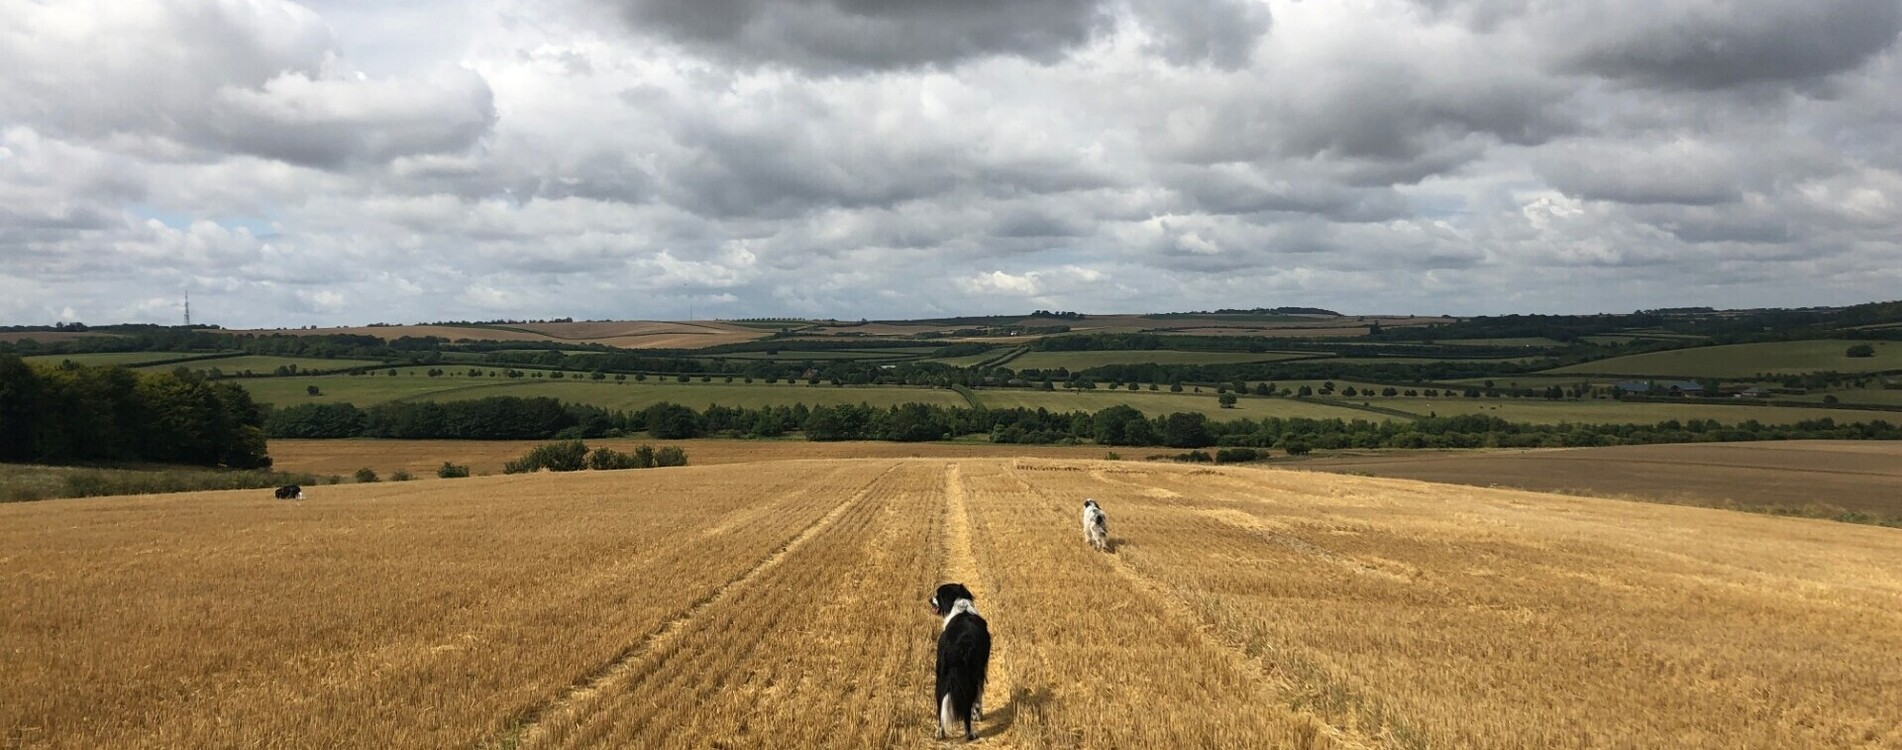 Dog in a field by Alice Robertson (cropped)